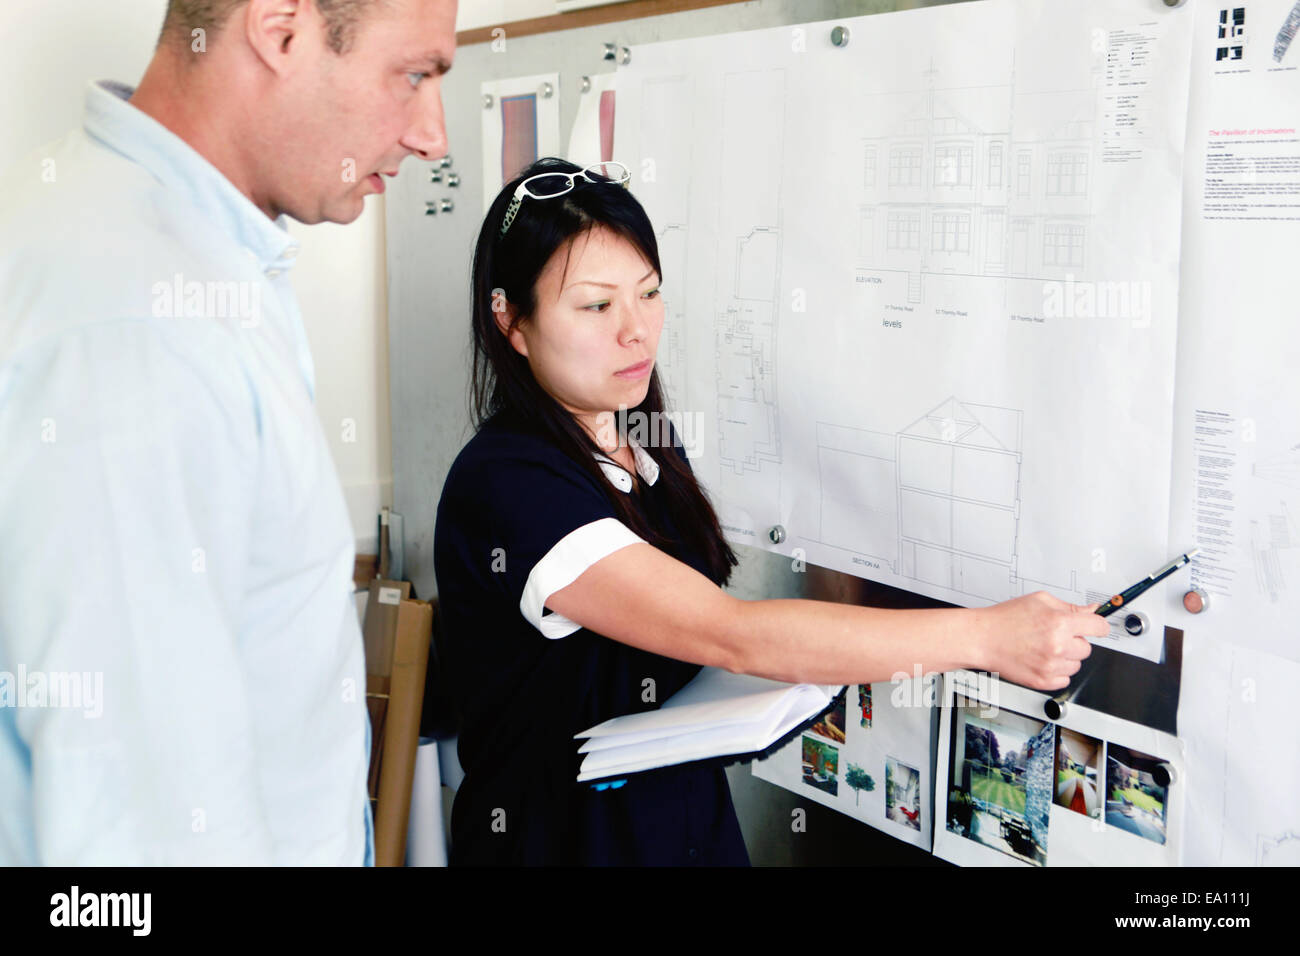 Male and female architects discussing ideas in office - Stock Image